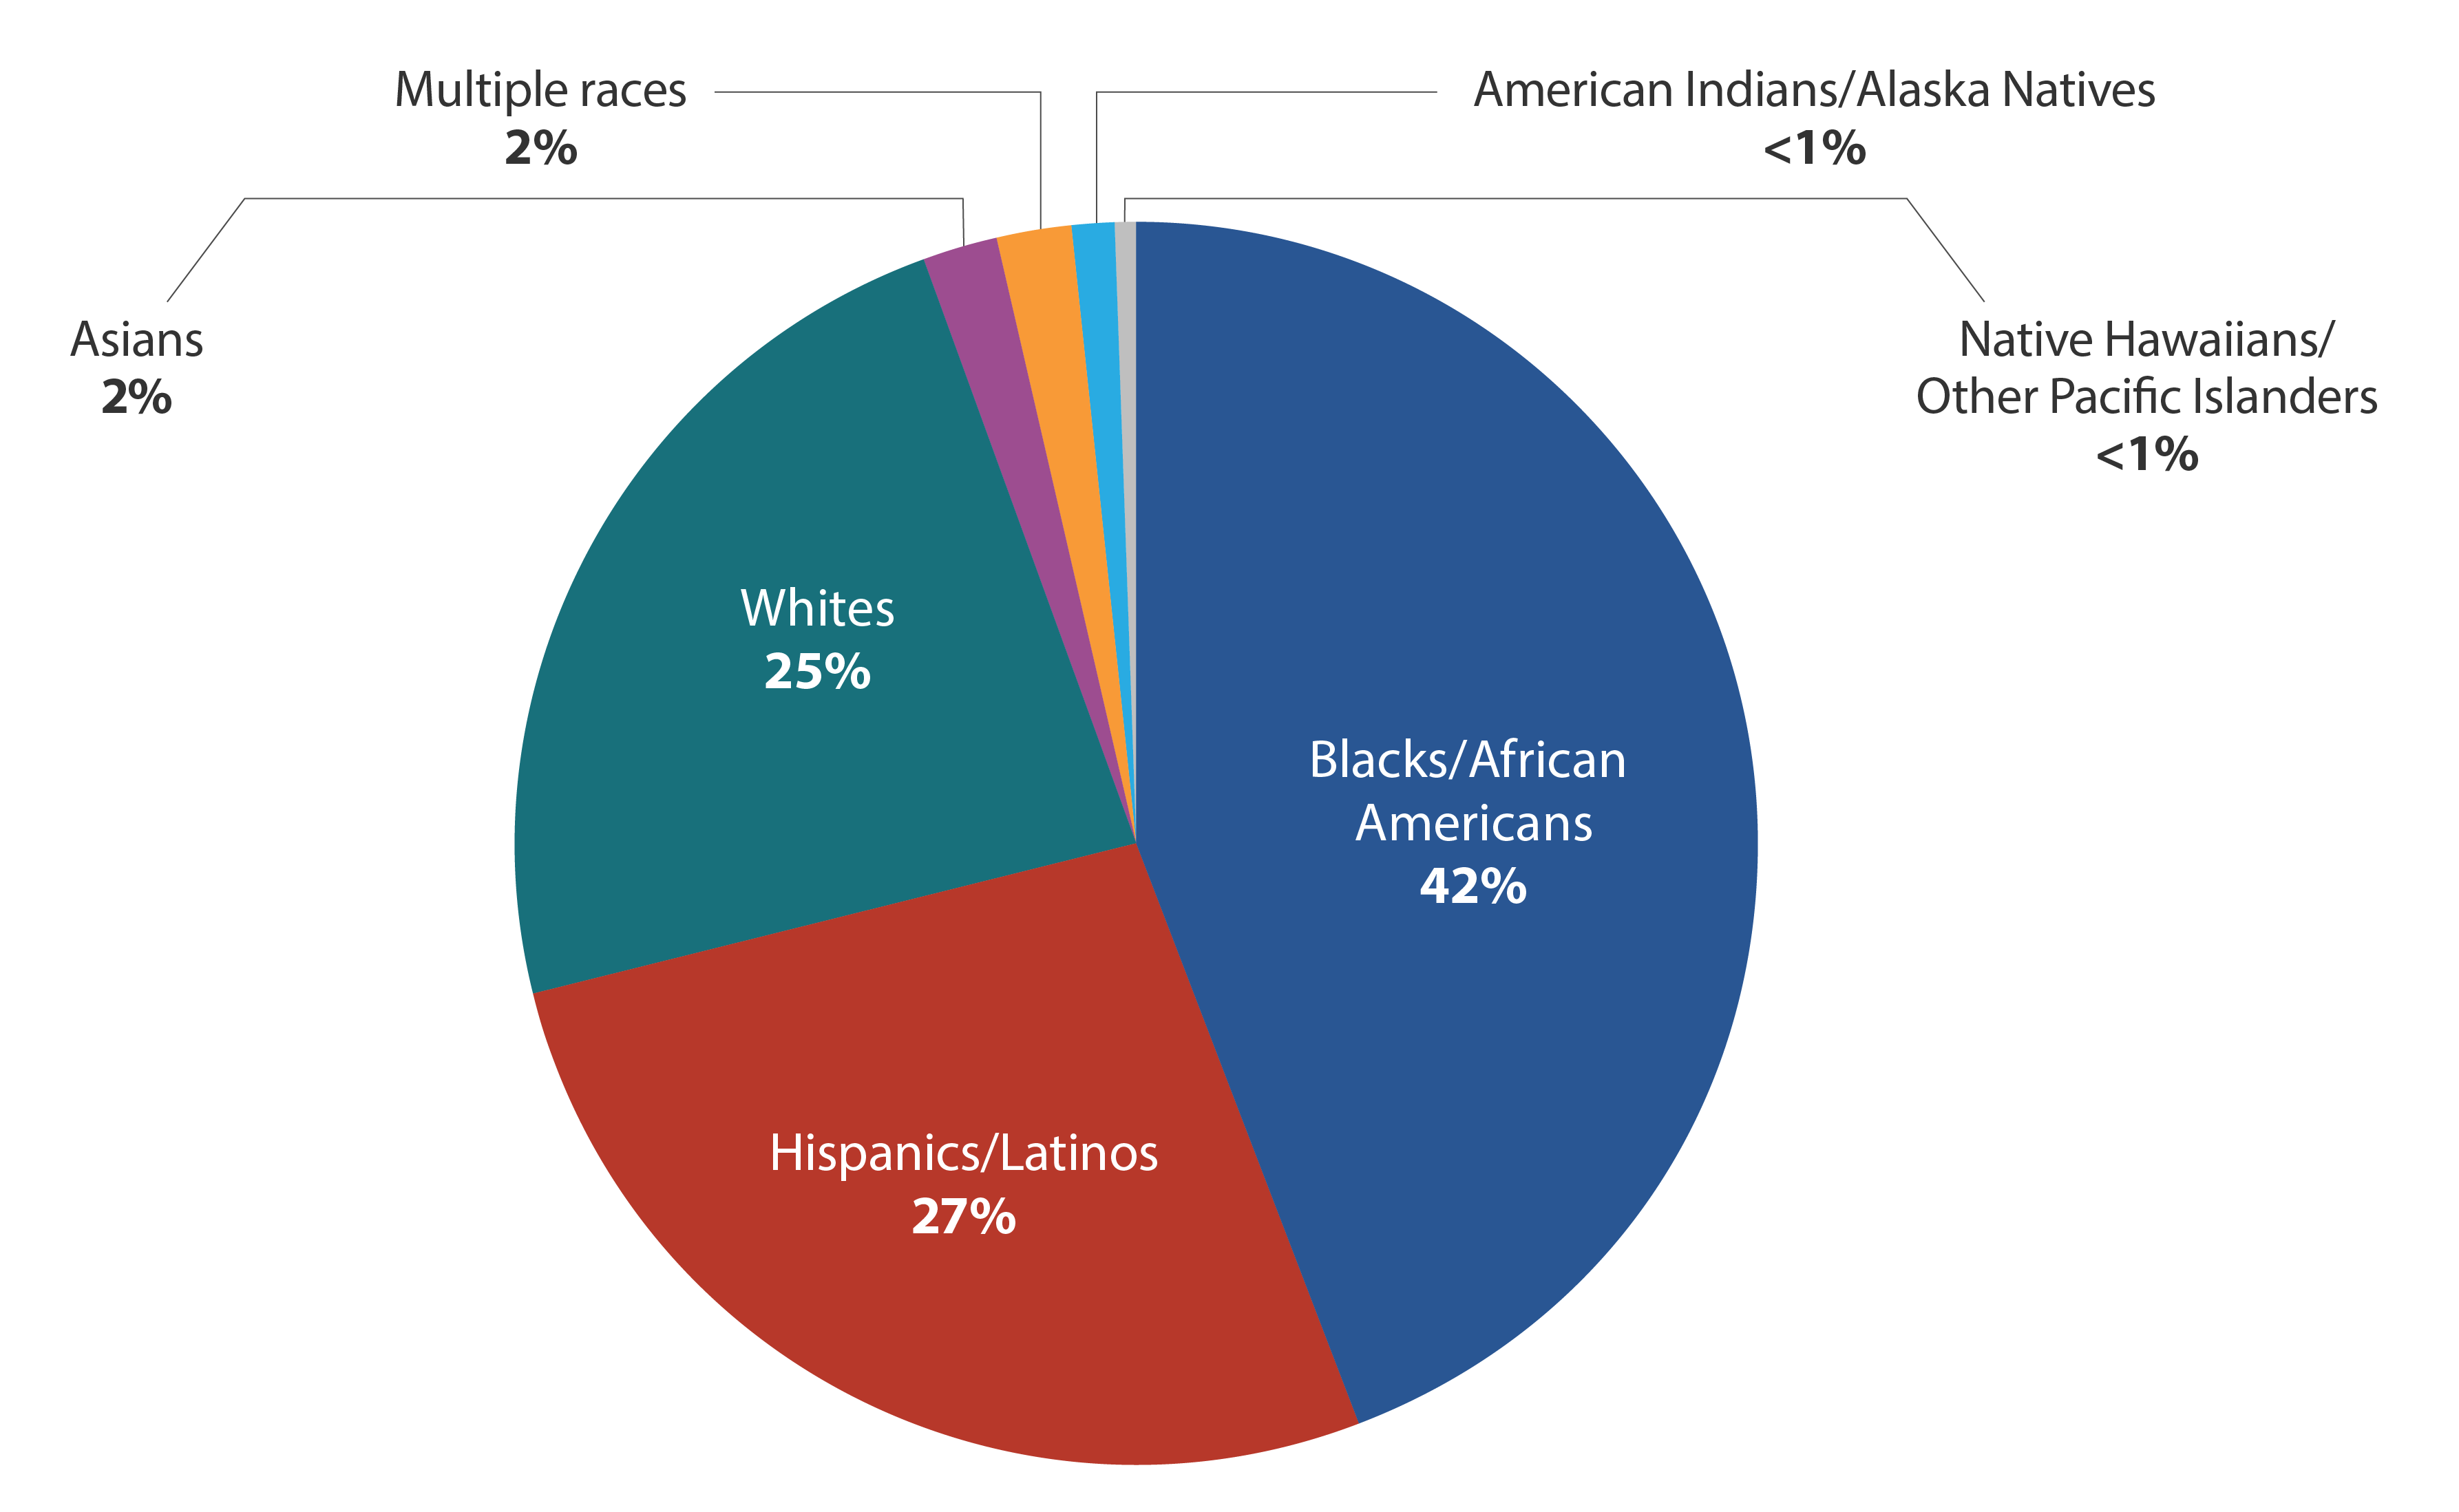 This pie chart shows HIV diagnoses in the United States and dependent areas in 2018 by race. Blacks/African Americans made up 42% of new HIV diagnoses, Hispanics/Latinos made up 27%, whites made up 25%, Asians made up 2%, multiple races made up 2%, American Indians/Alaska Natives made up less than 1%, and Native Hawaiians and Other Pacific Islanders made up less than 1% of new HIV diagnoses.